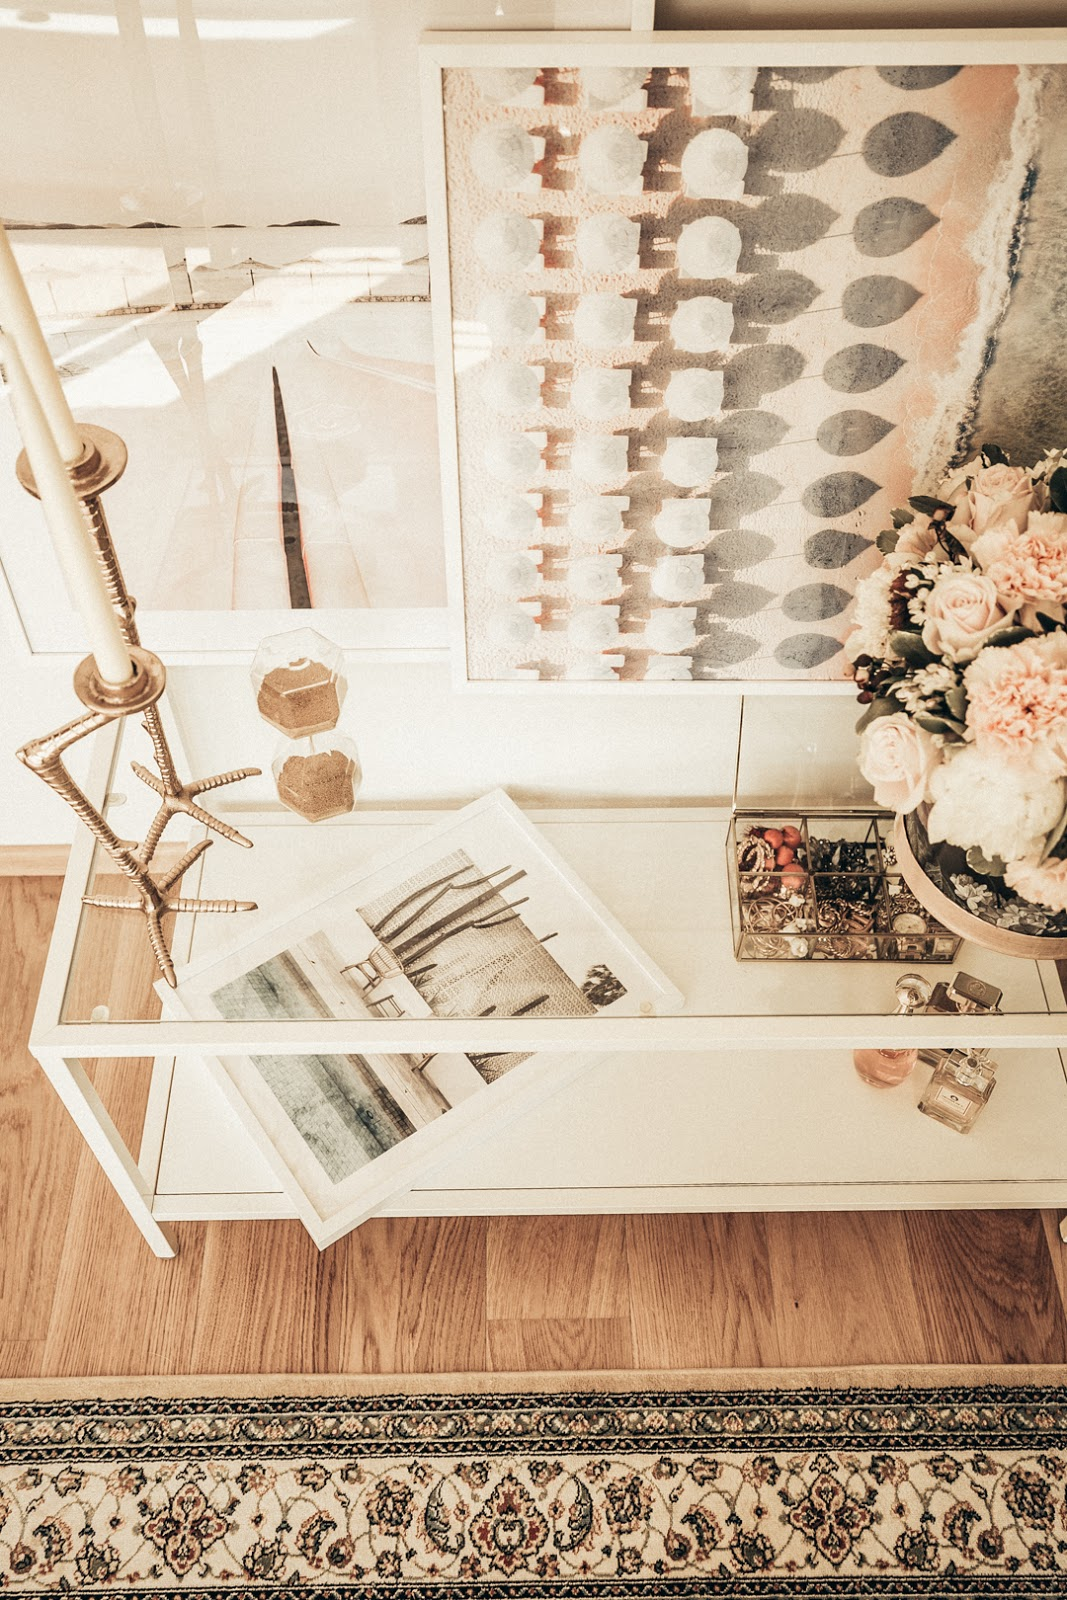 home decor table design posters flowers candles jewelry